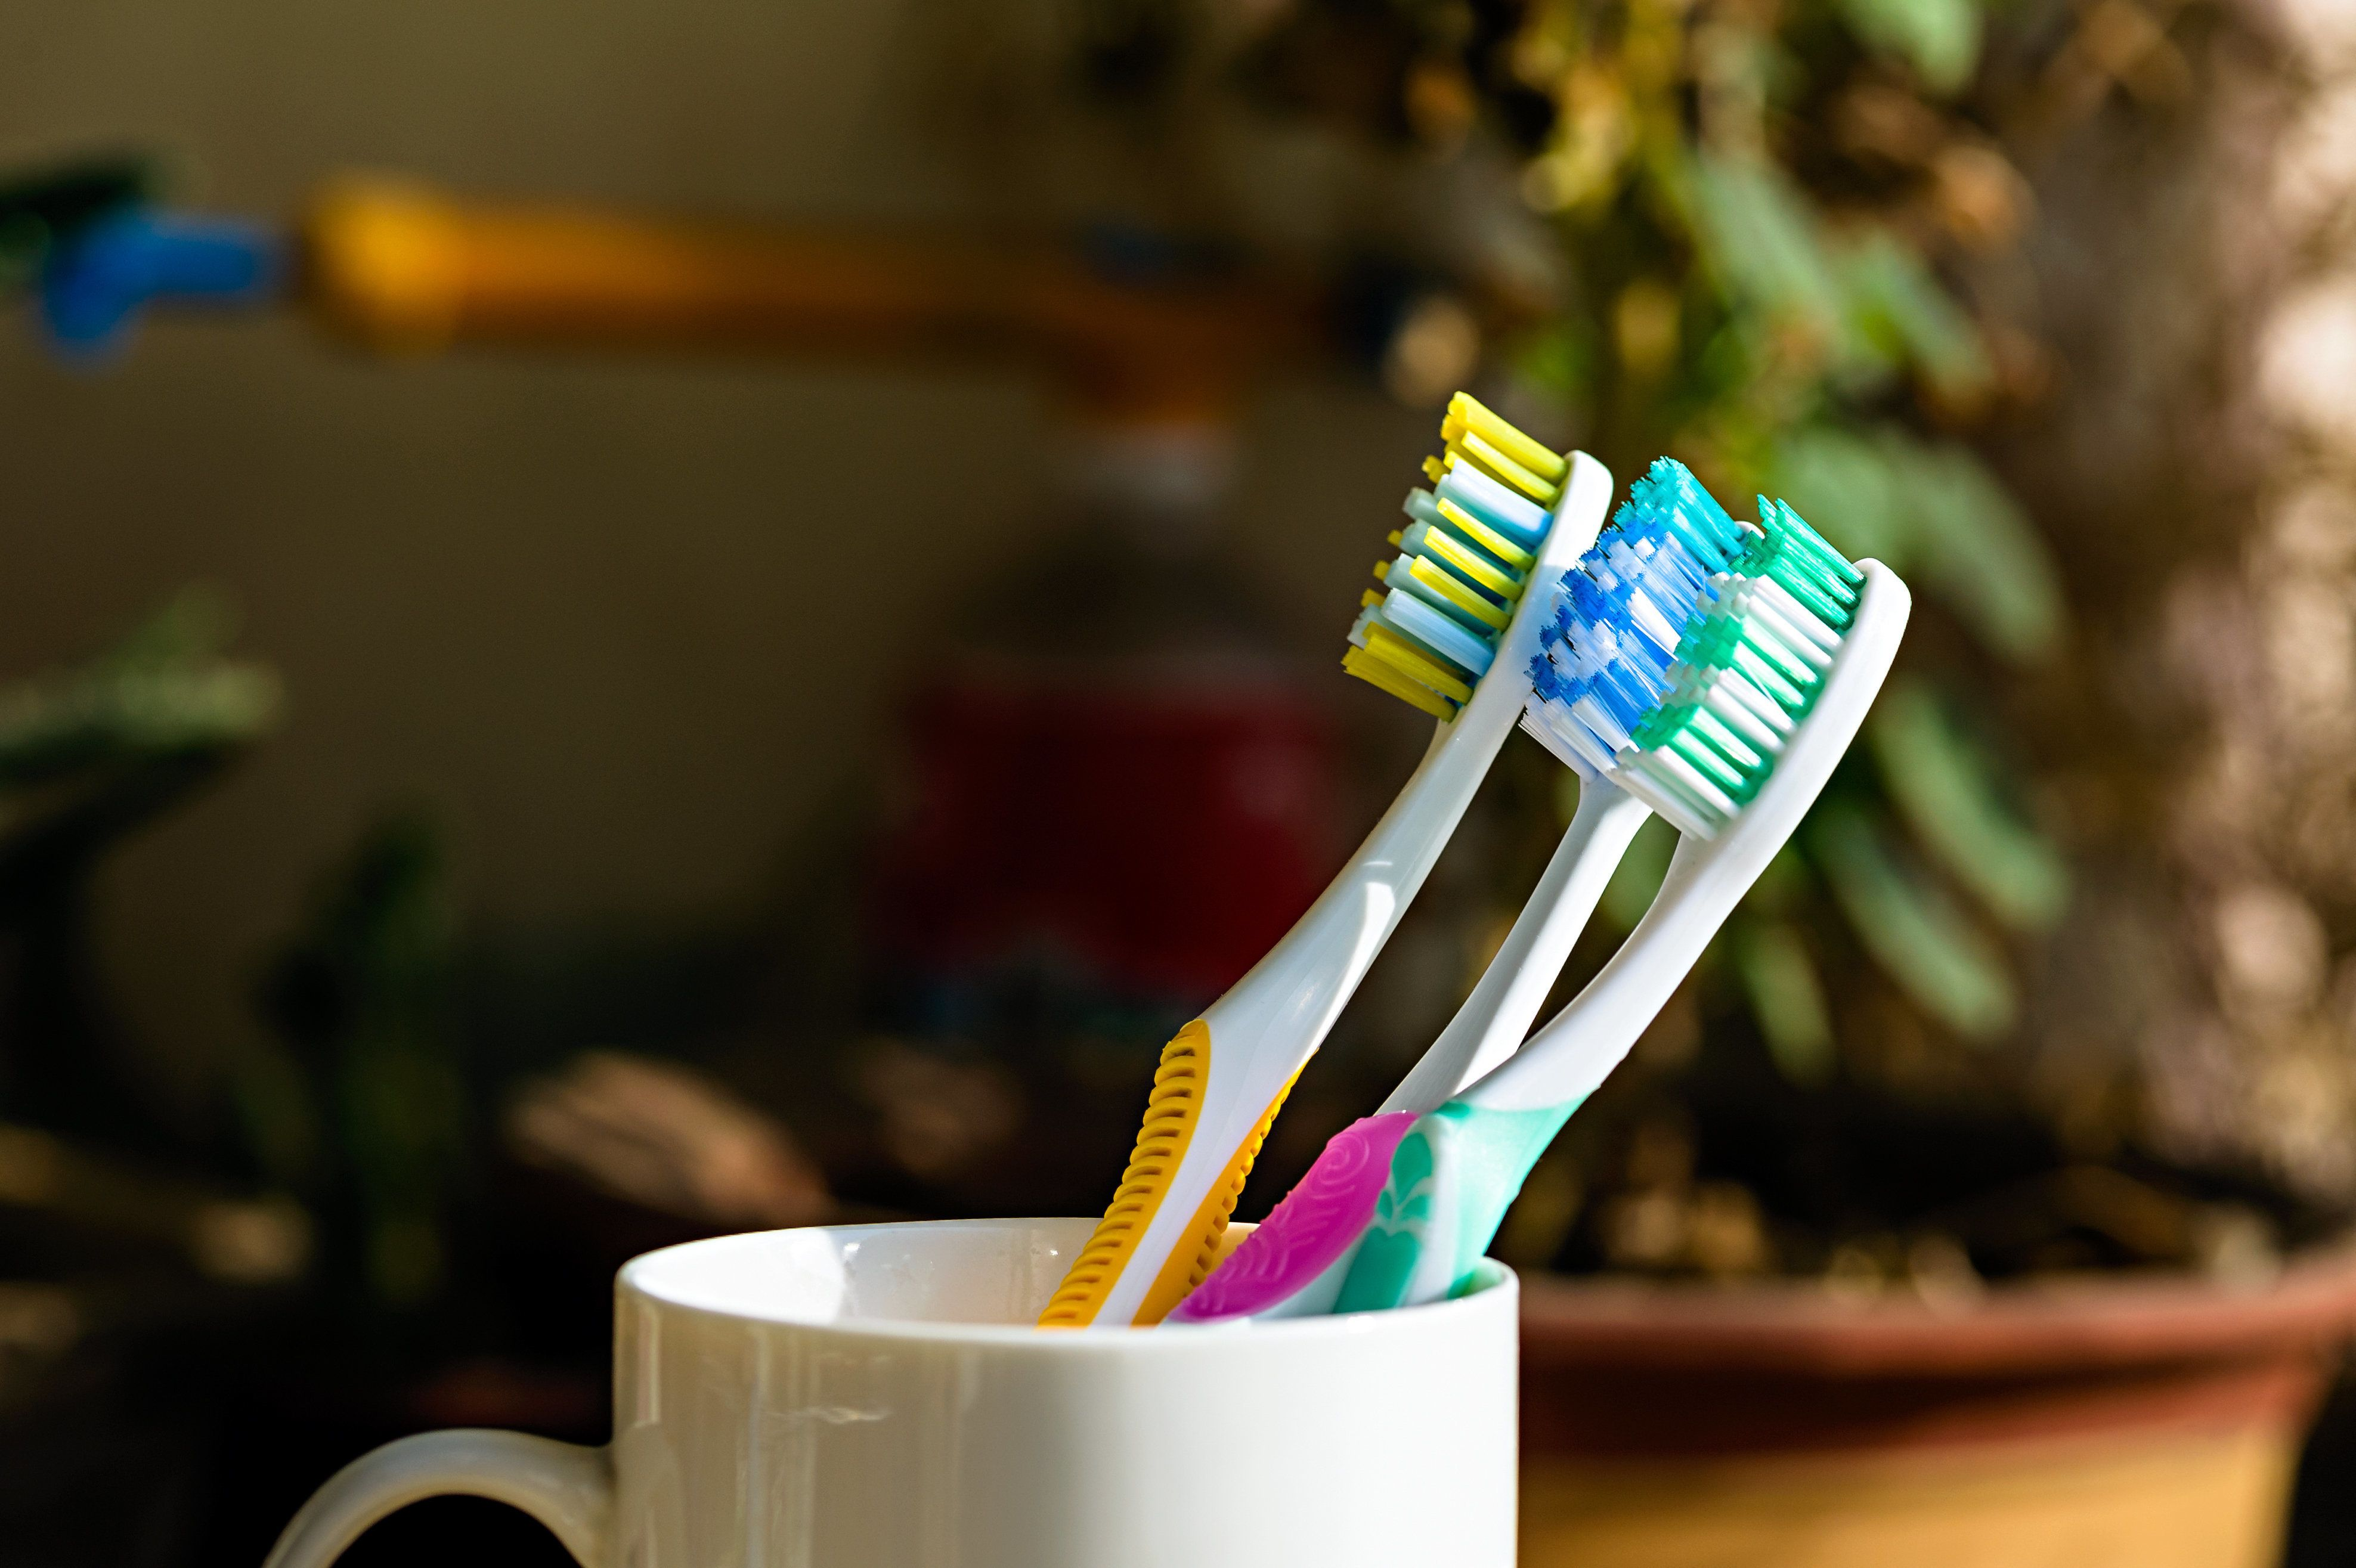 Three Toothbrushes on a cup